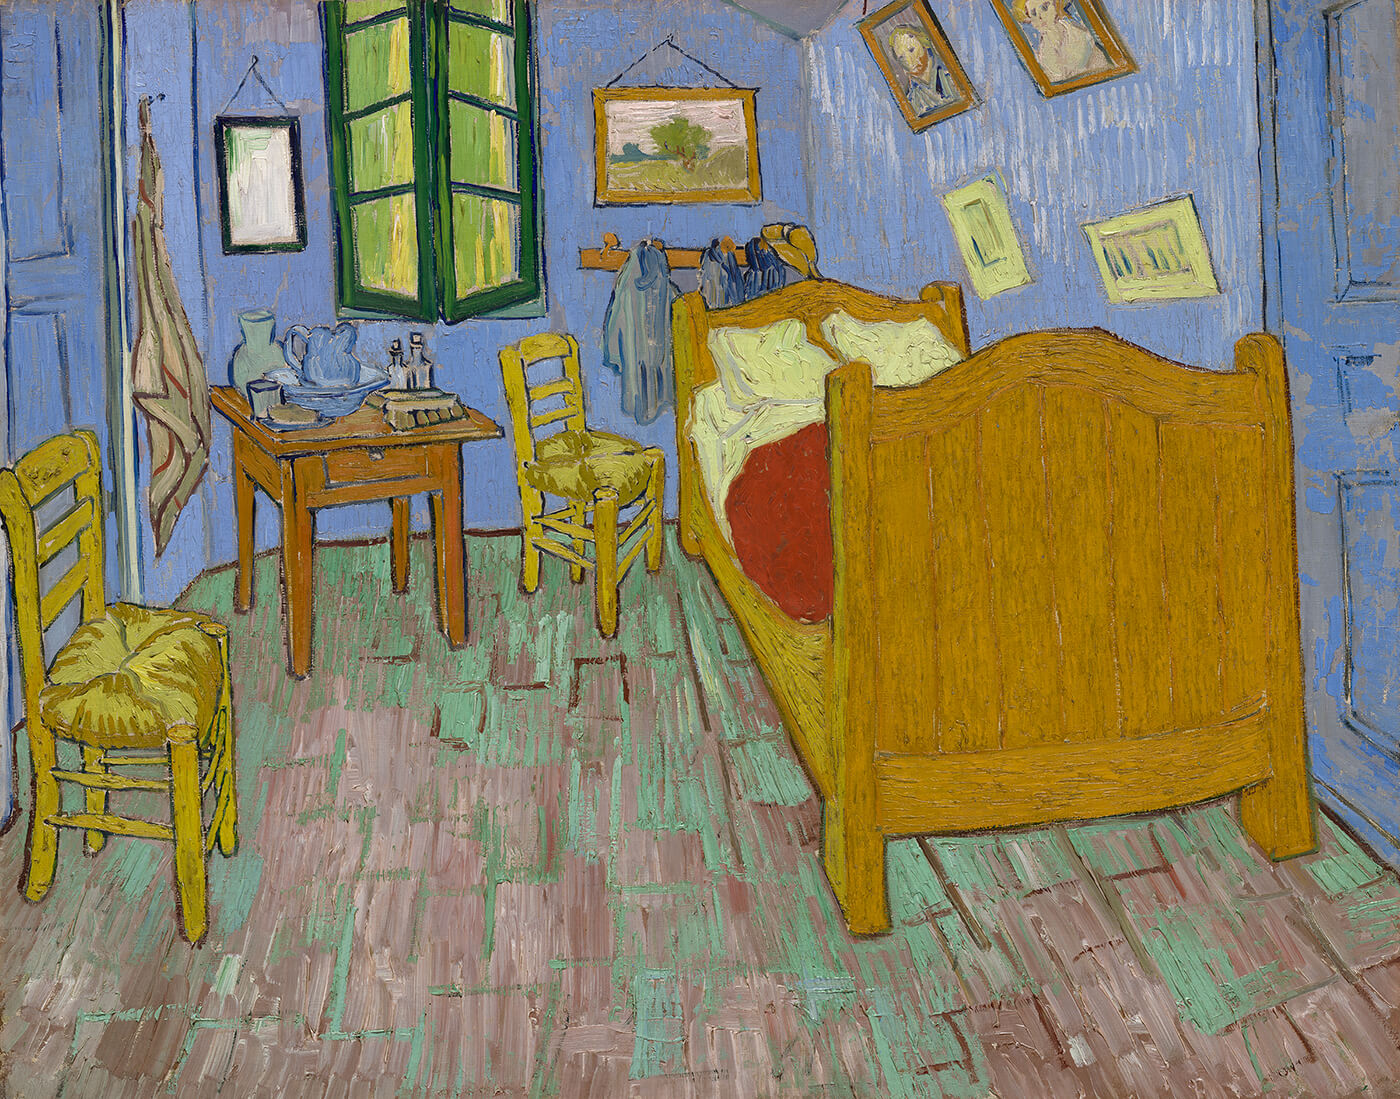 Painting The Bedroom Van Goghs Bedrooms About The Paintings